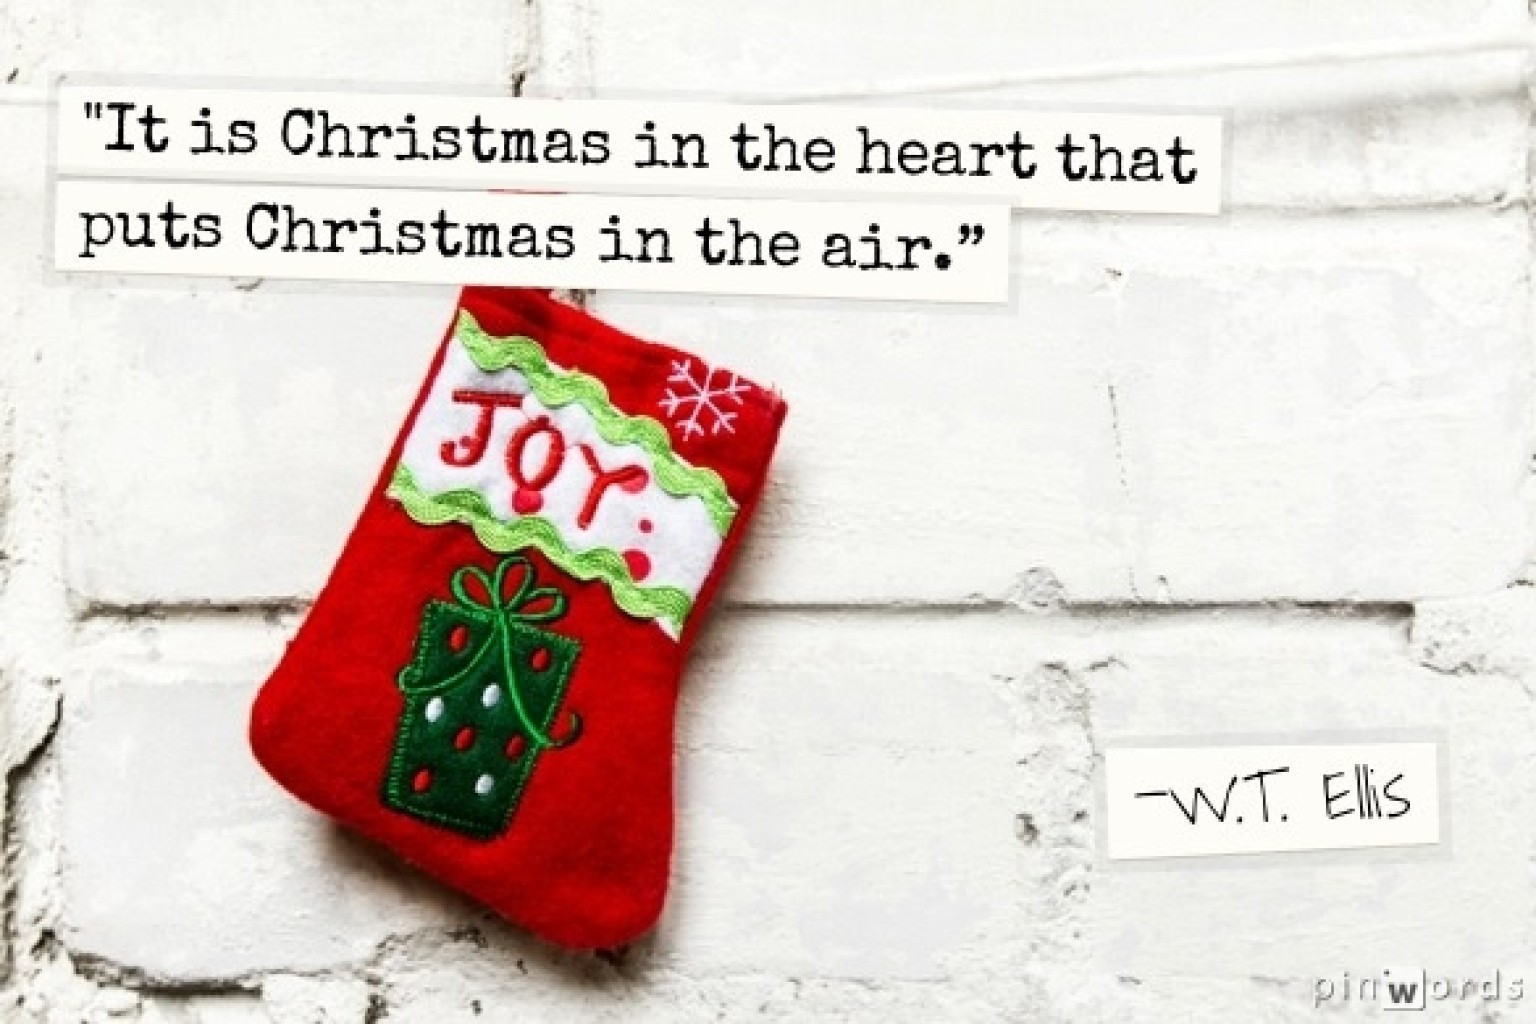 Christmas Quotes And Graphics: Christmas Quotes: 12 Spirited Sayings To Celebrate The